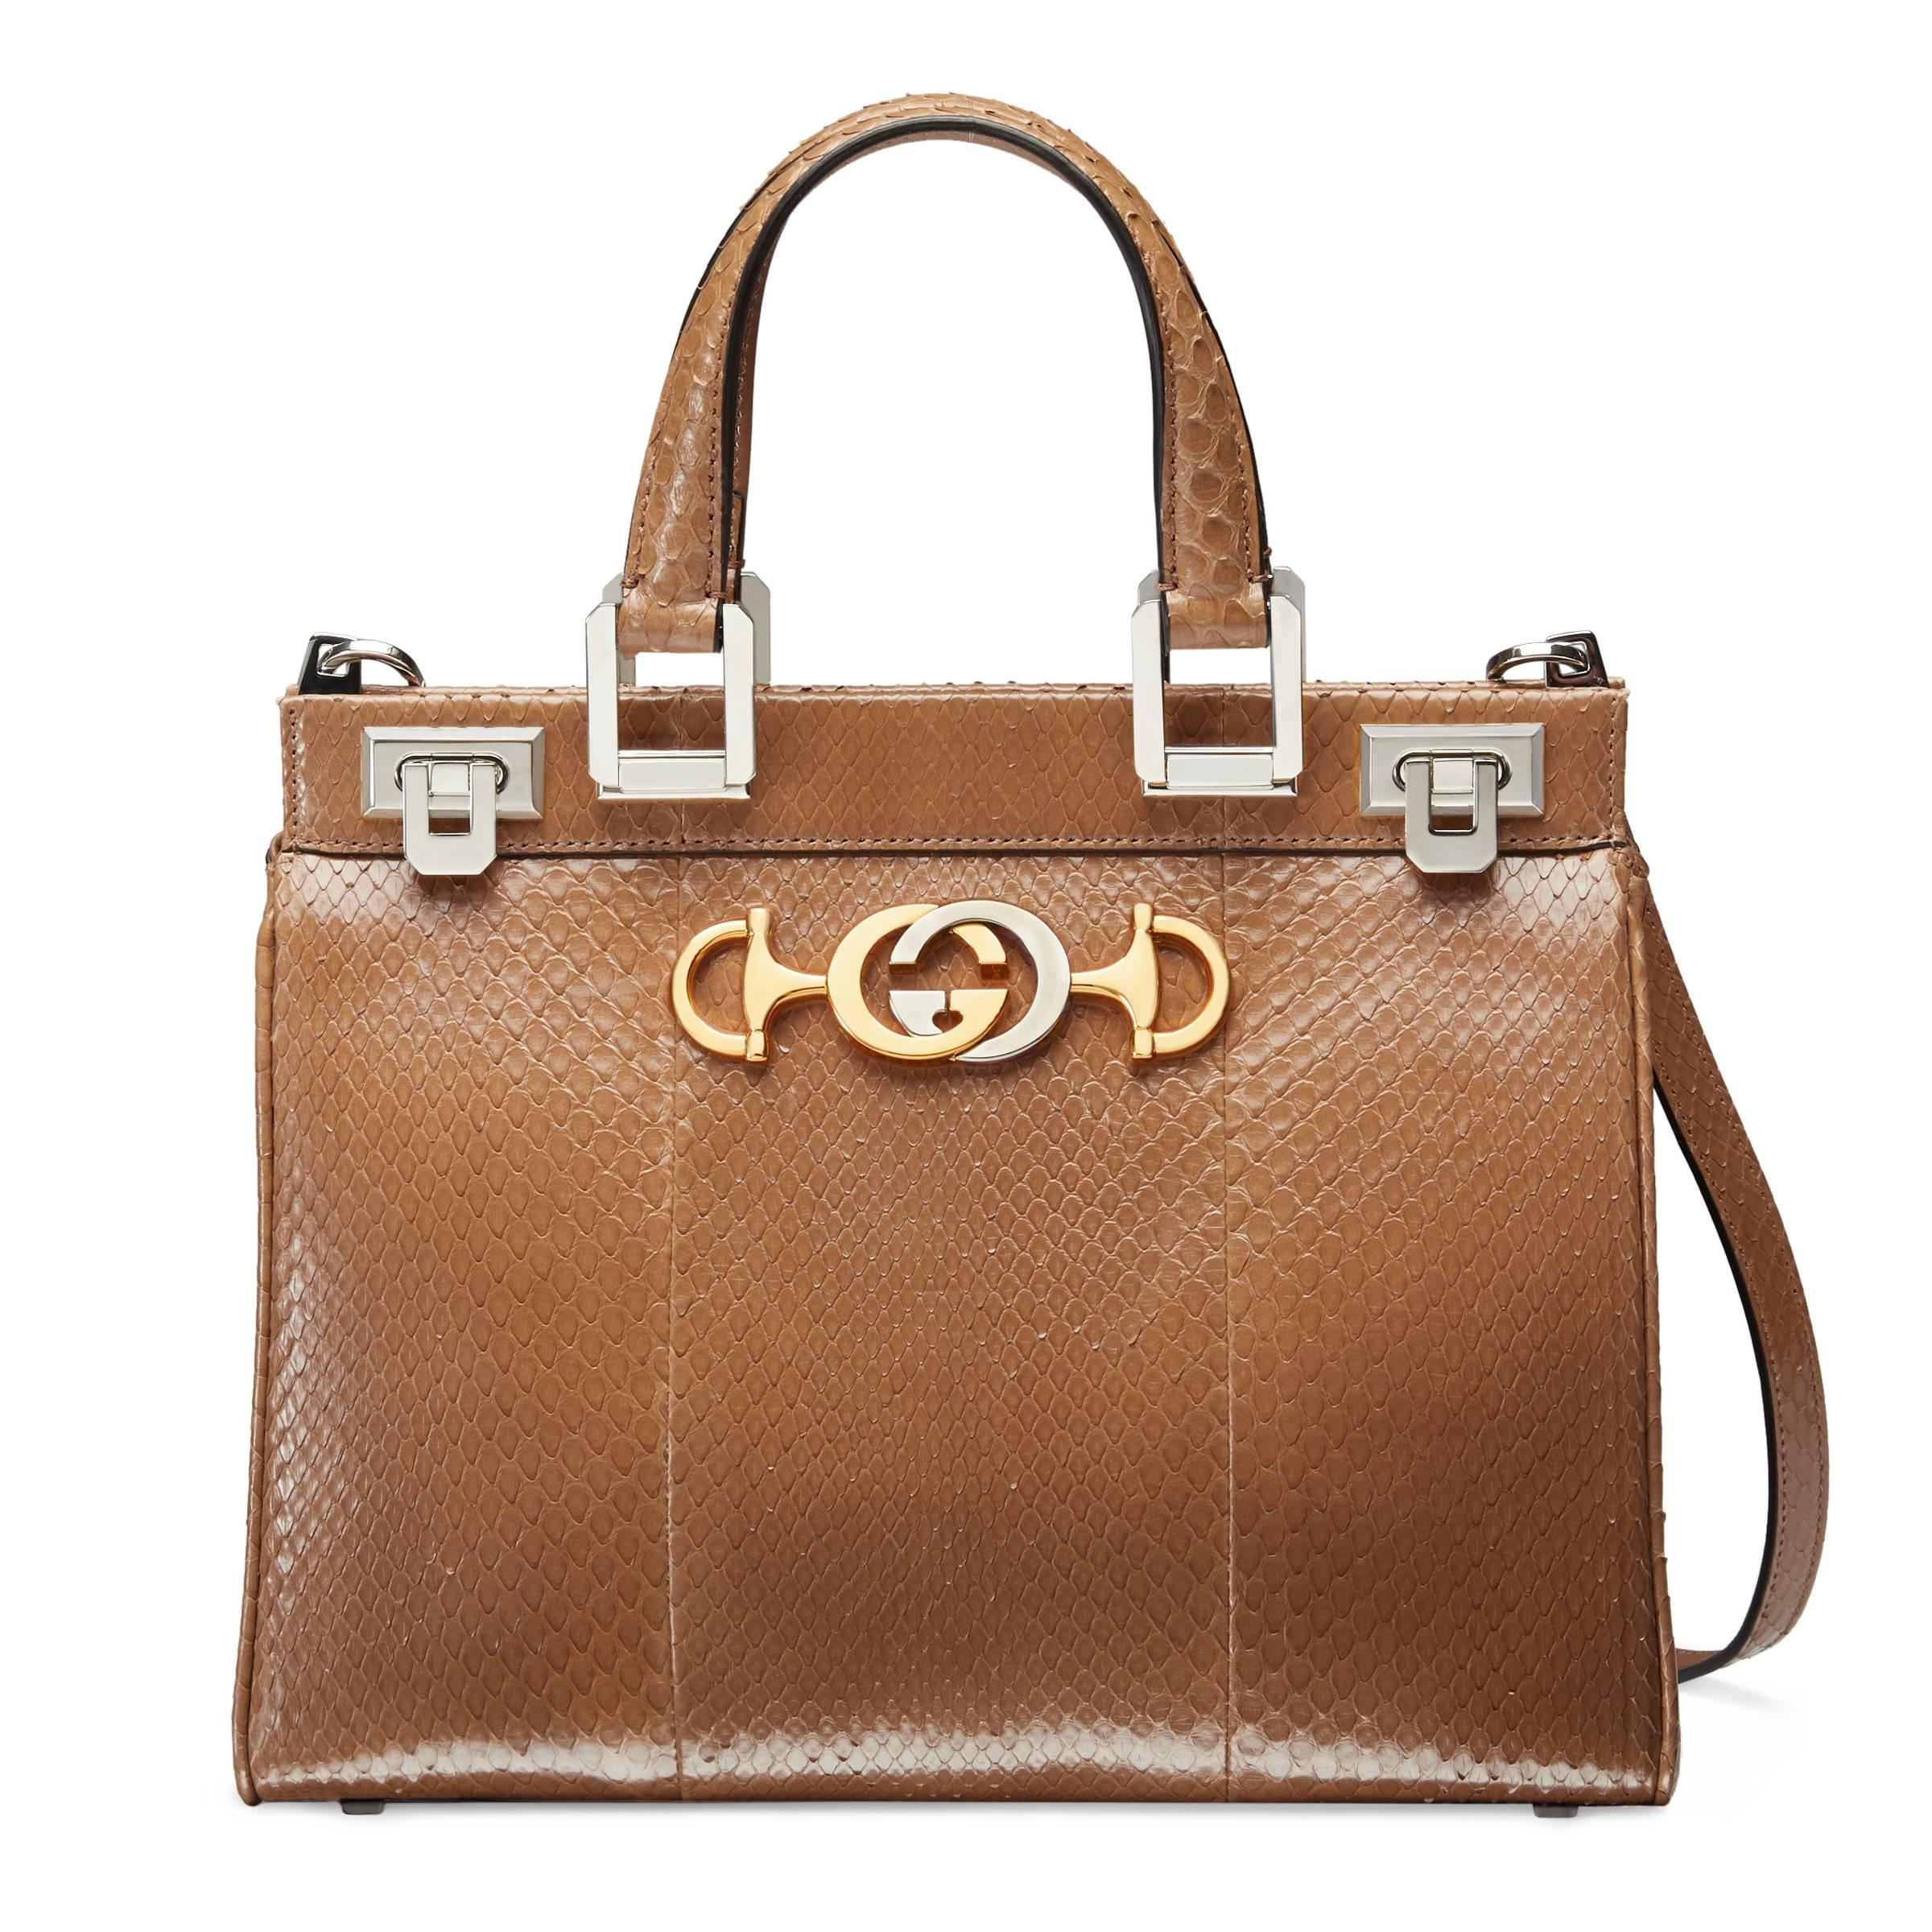 0c87f91bc62 Gucci Zumi Snakeskin Small Top Handle Bag in Natural - Lyst